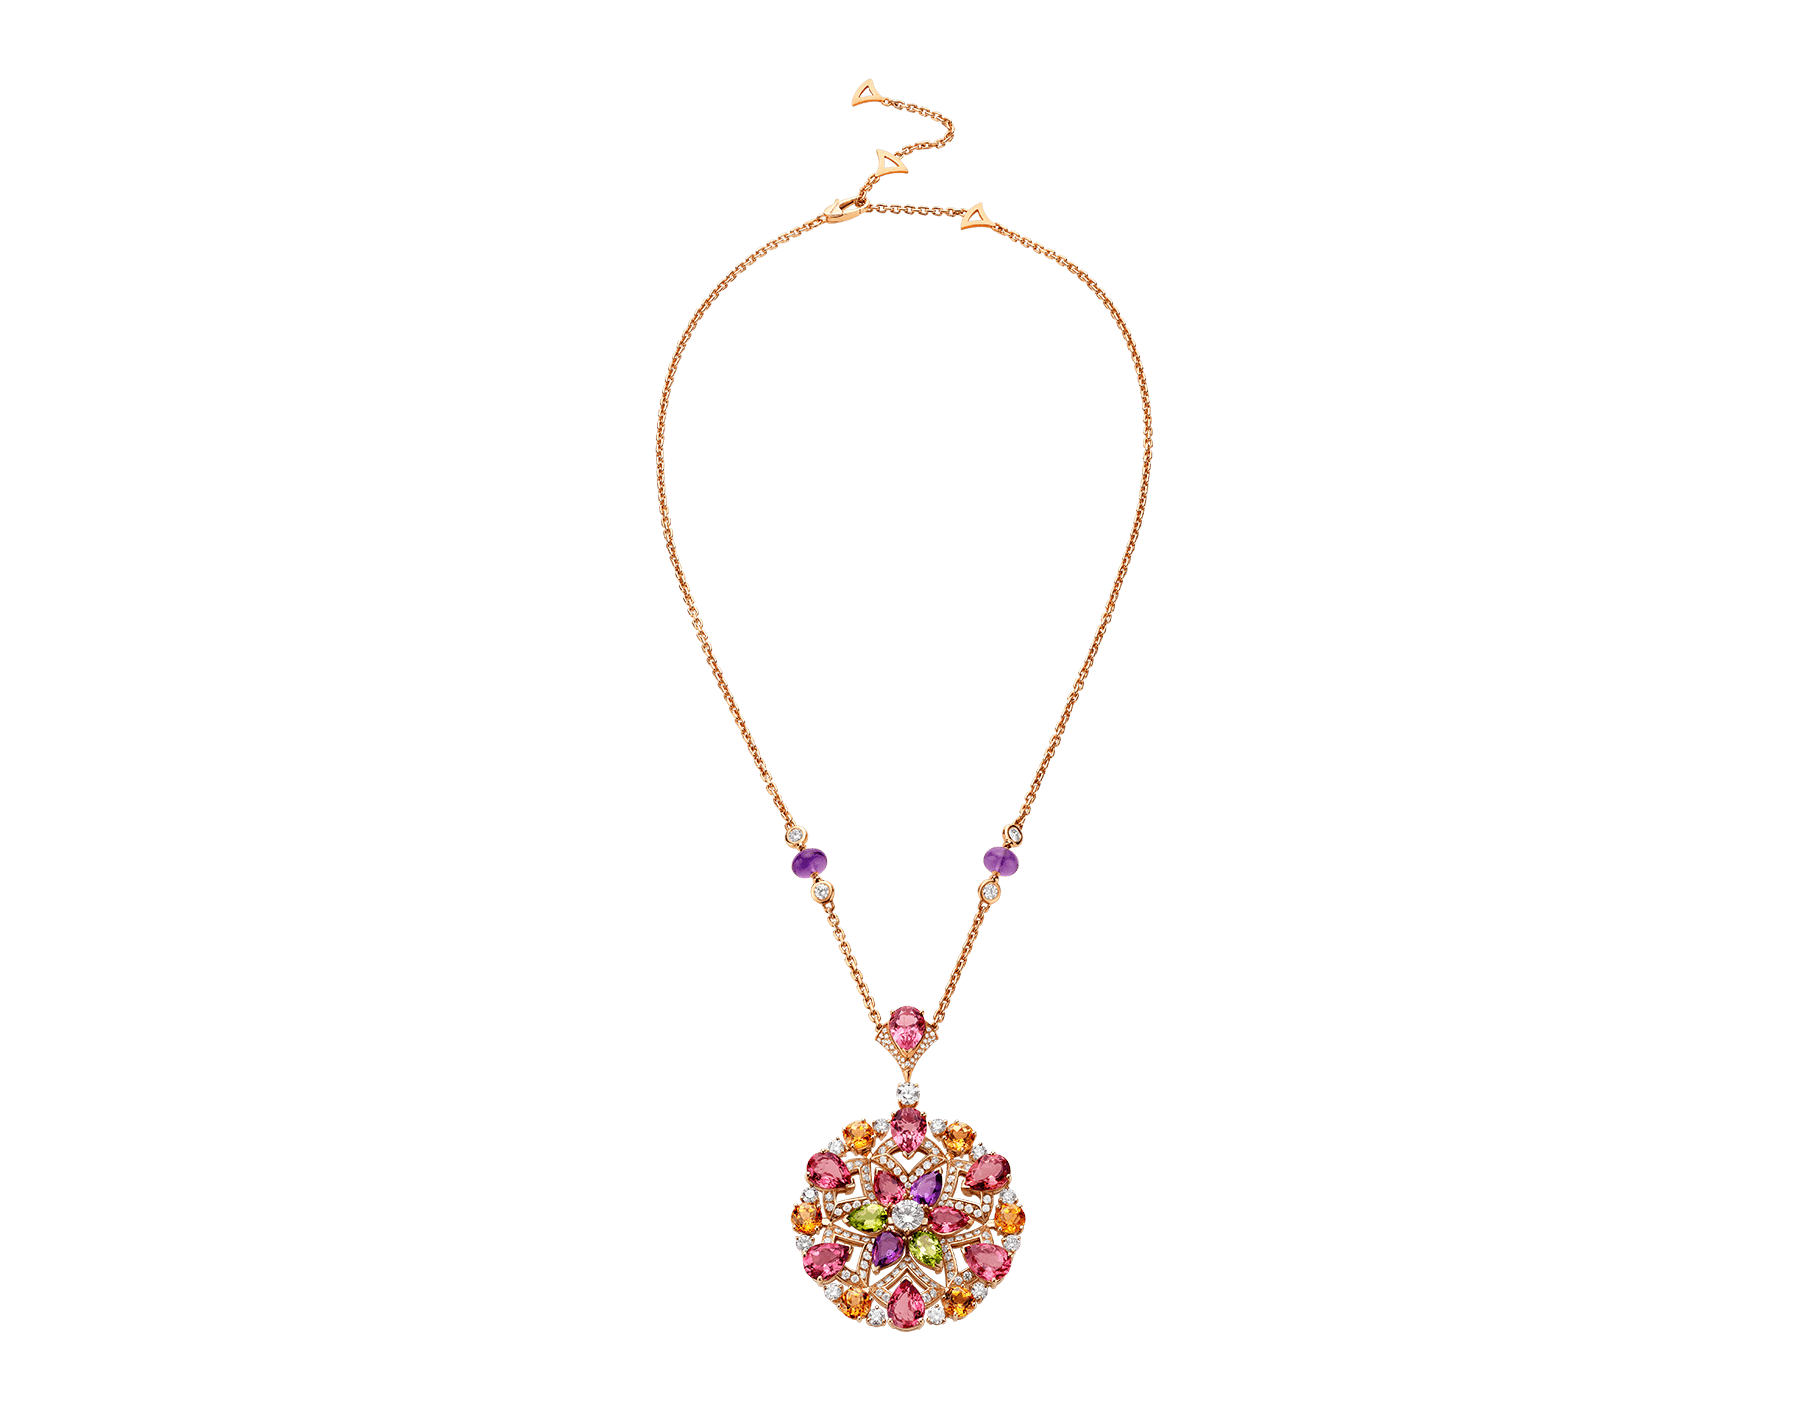 DIVAS' DREAM 18 kt rose gold necklace set with coloured gemstones, brilliant-cut and pavé diamonds. 355907 image 1